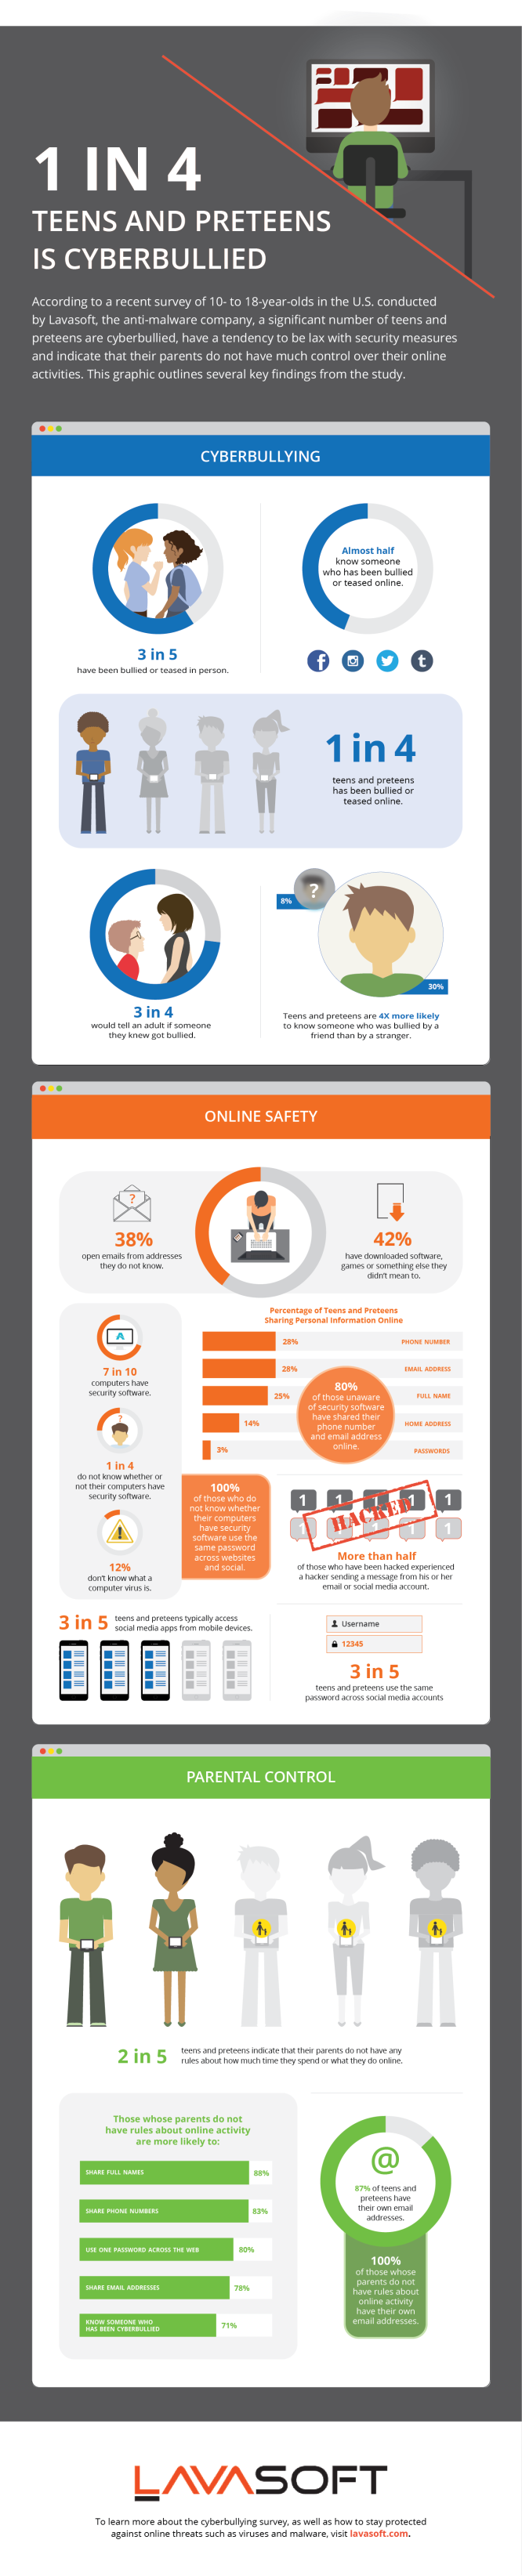 Lavasoft Cyberbullying and Online Safety Infographic